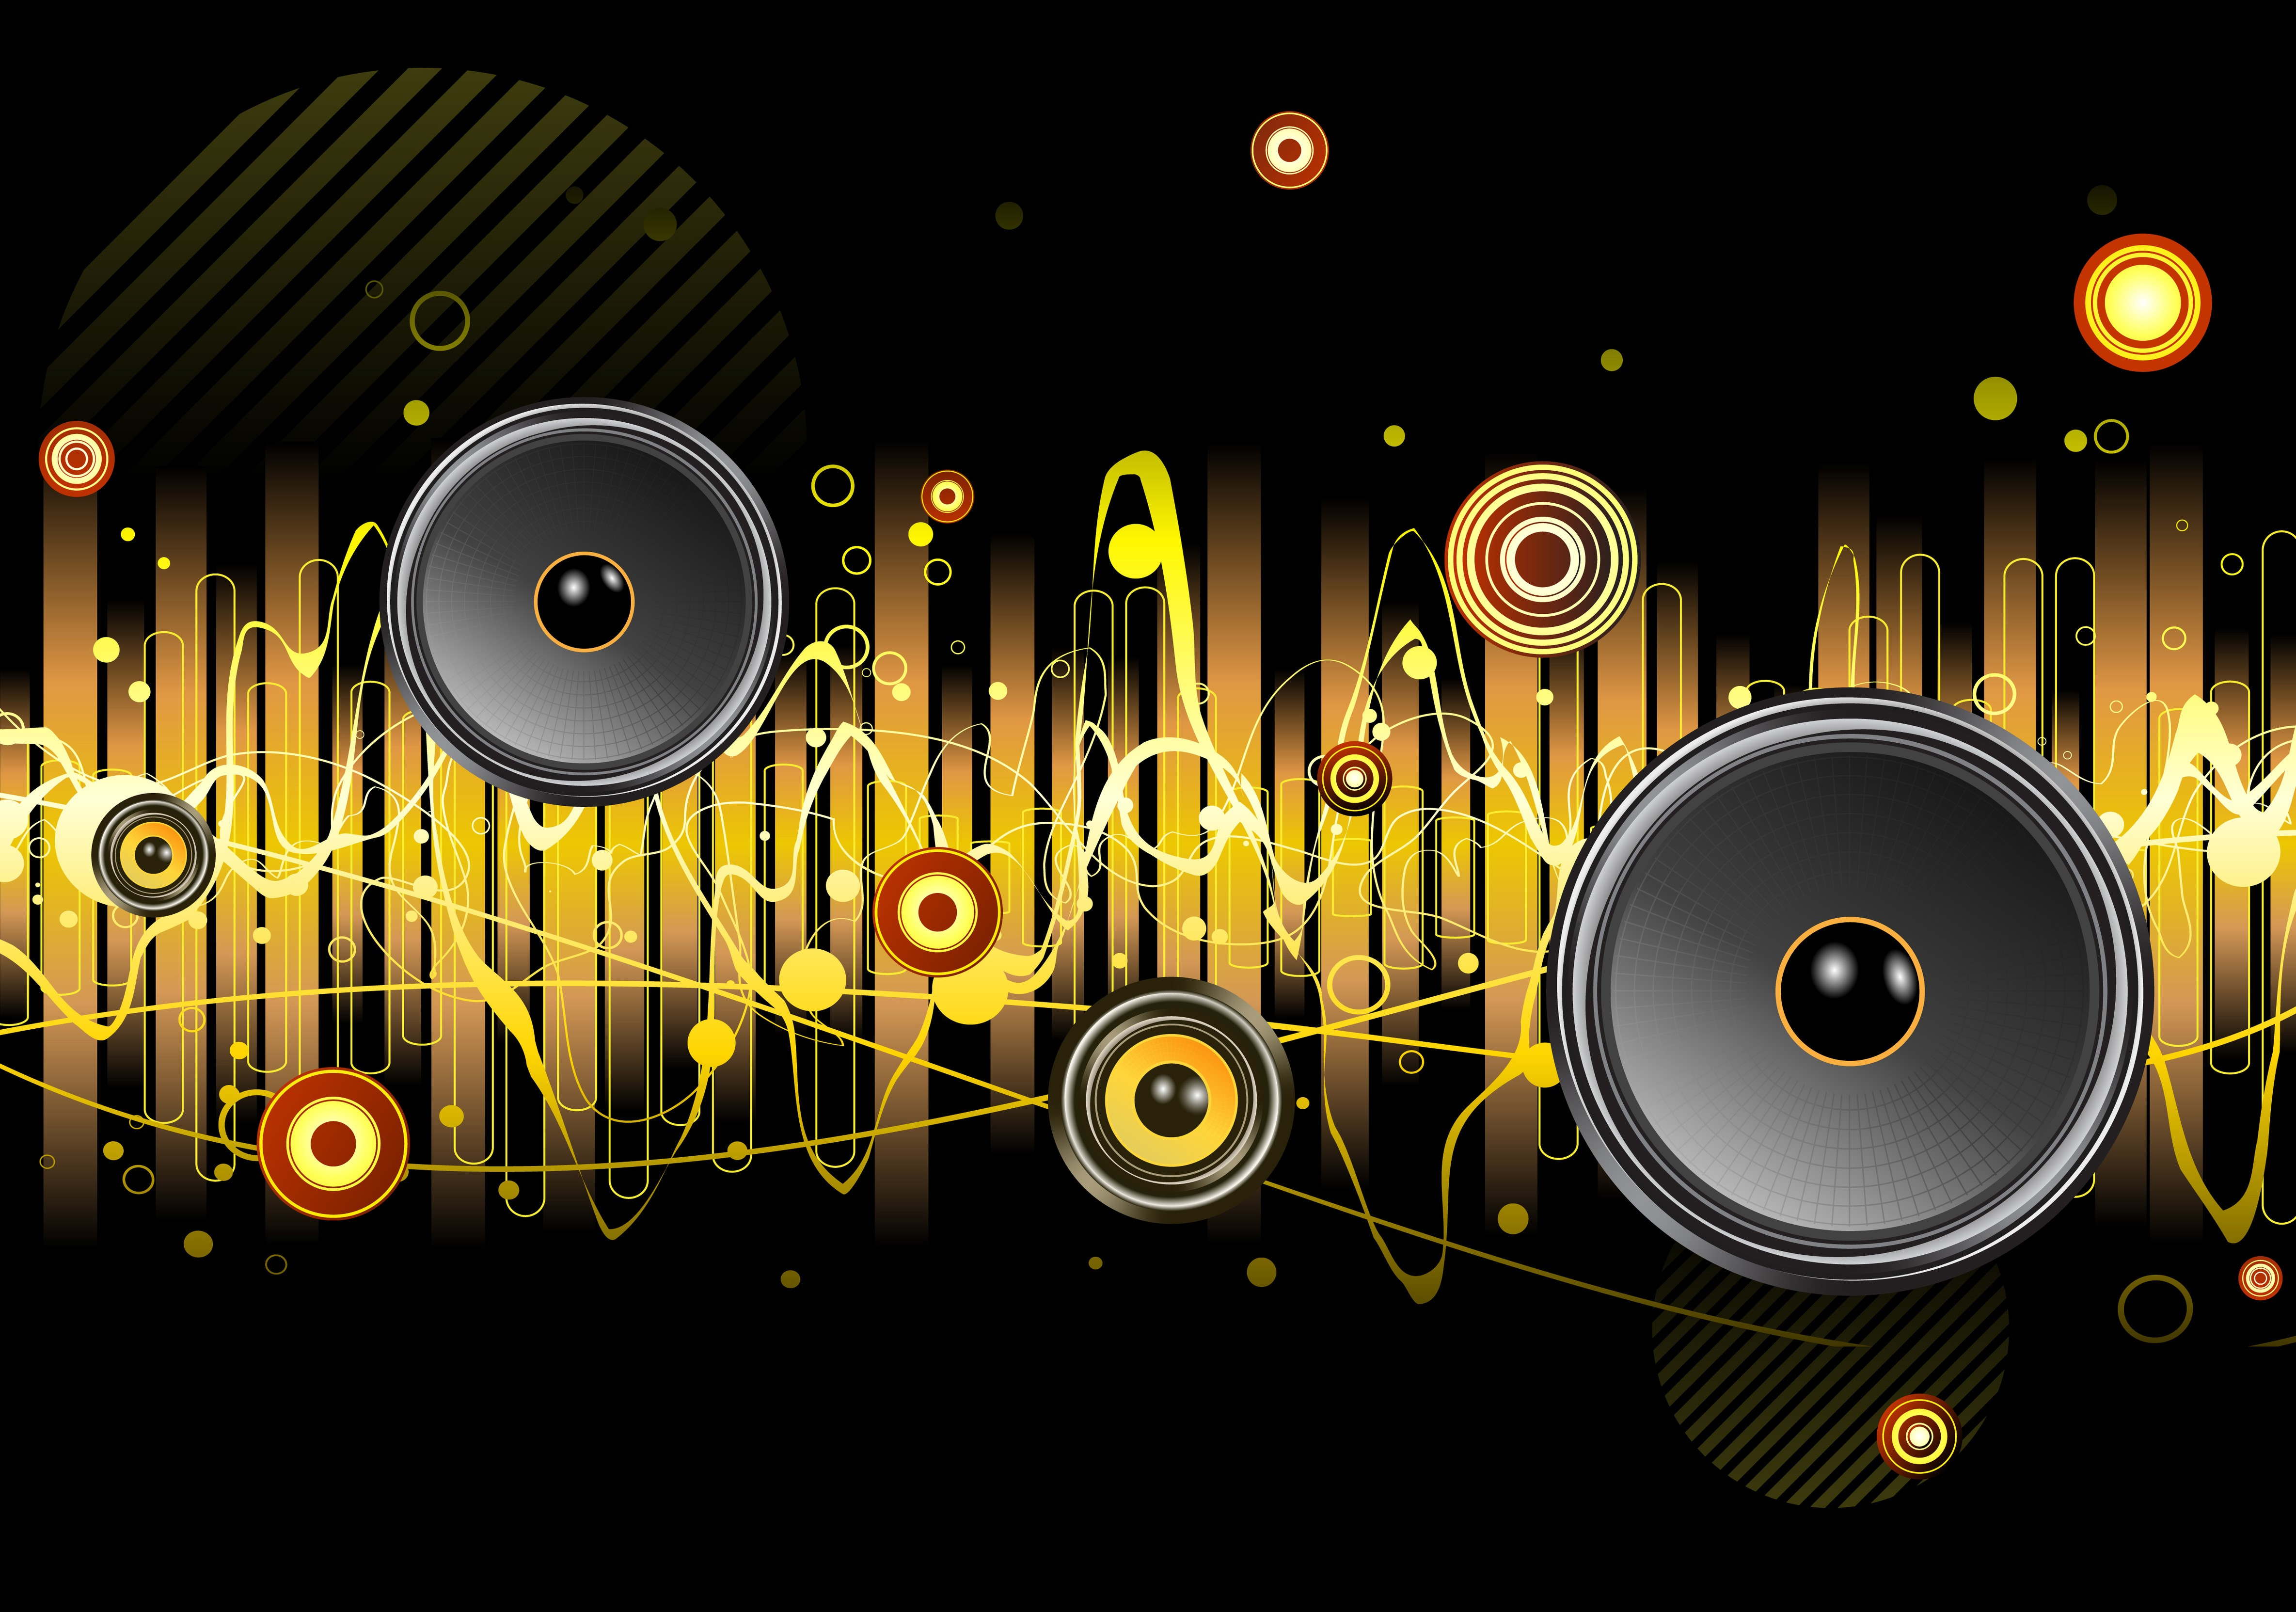 Cool Abstract Dj Music Wallpaper: Many Different Speakers In The Abstract Music Wallpaper